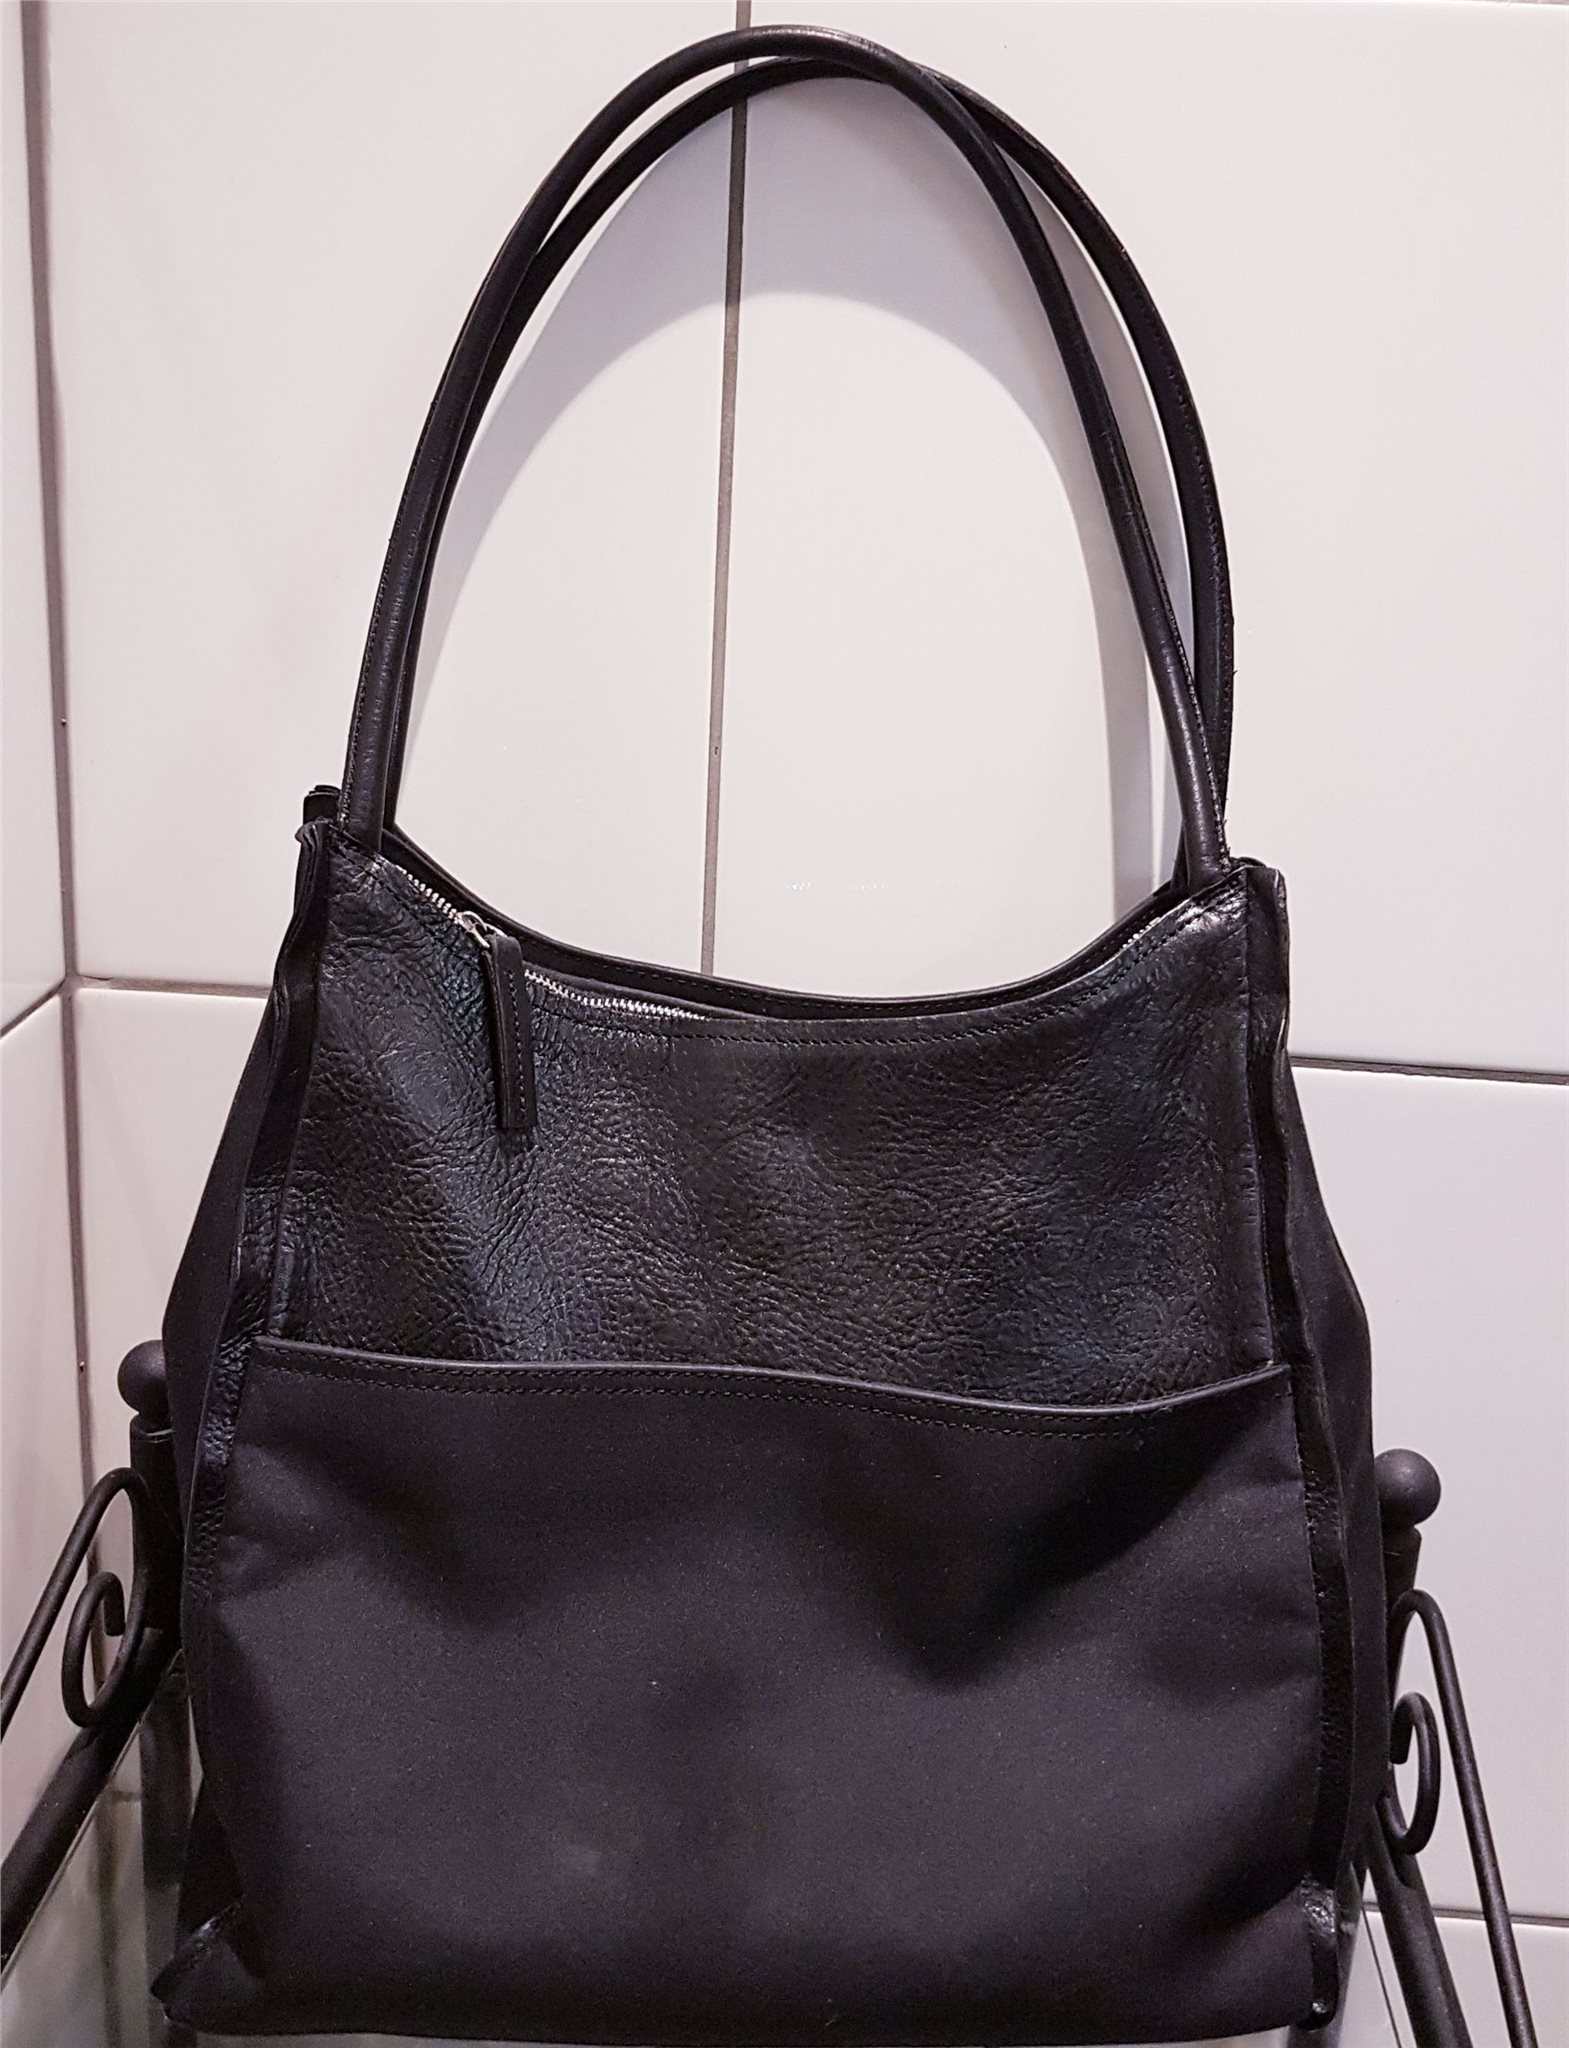 e3b4f64d90 DKNY DONNA KARAN NEW YORK VÄSKA TOTE BAG  (338042001) ᐈ Köp på Tradera